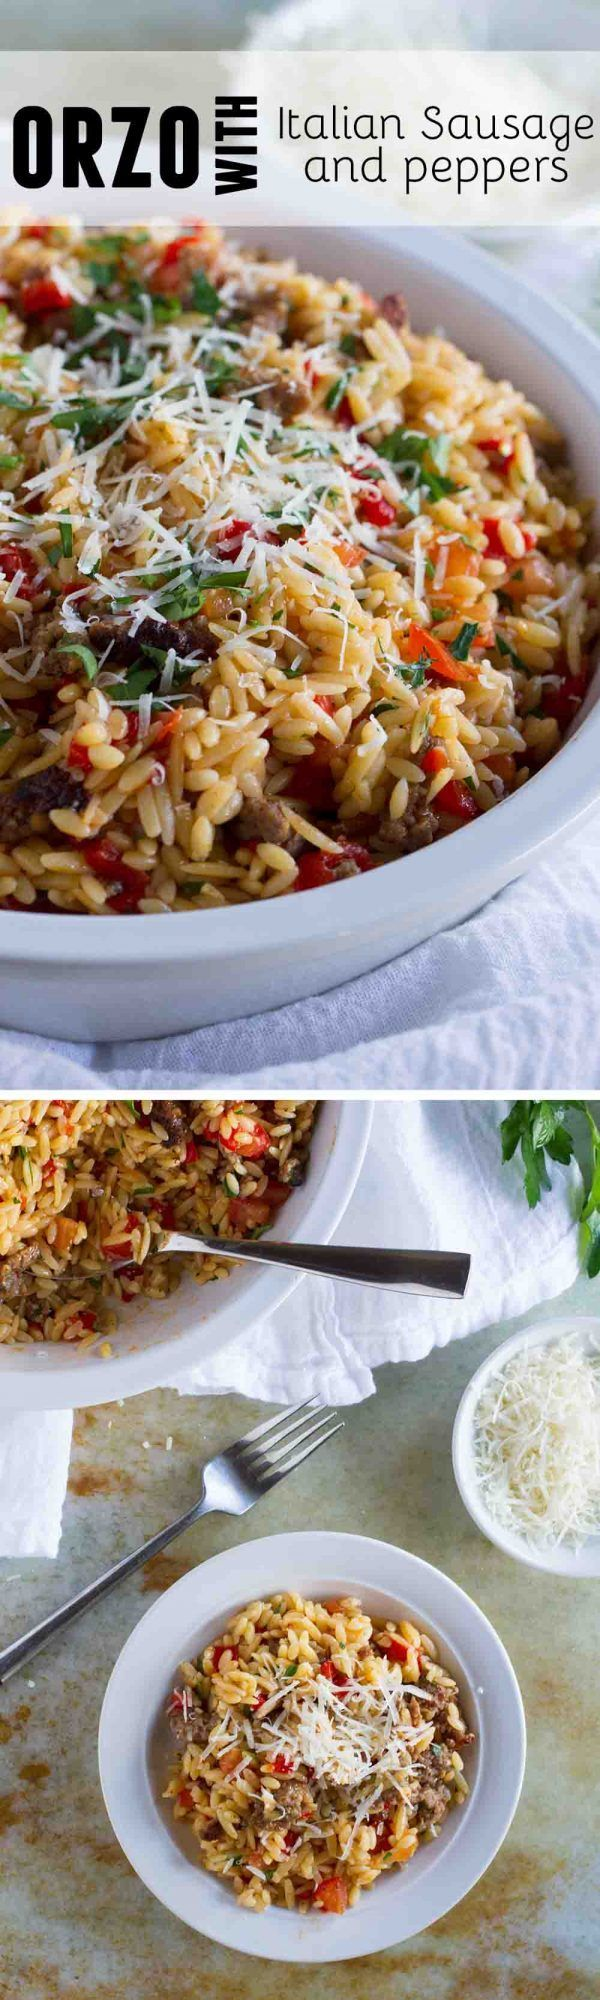 Easy orzo rice recipes